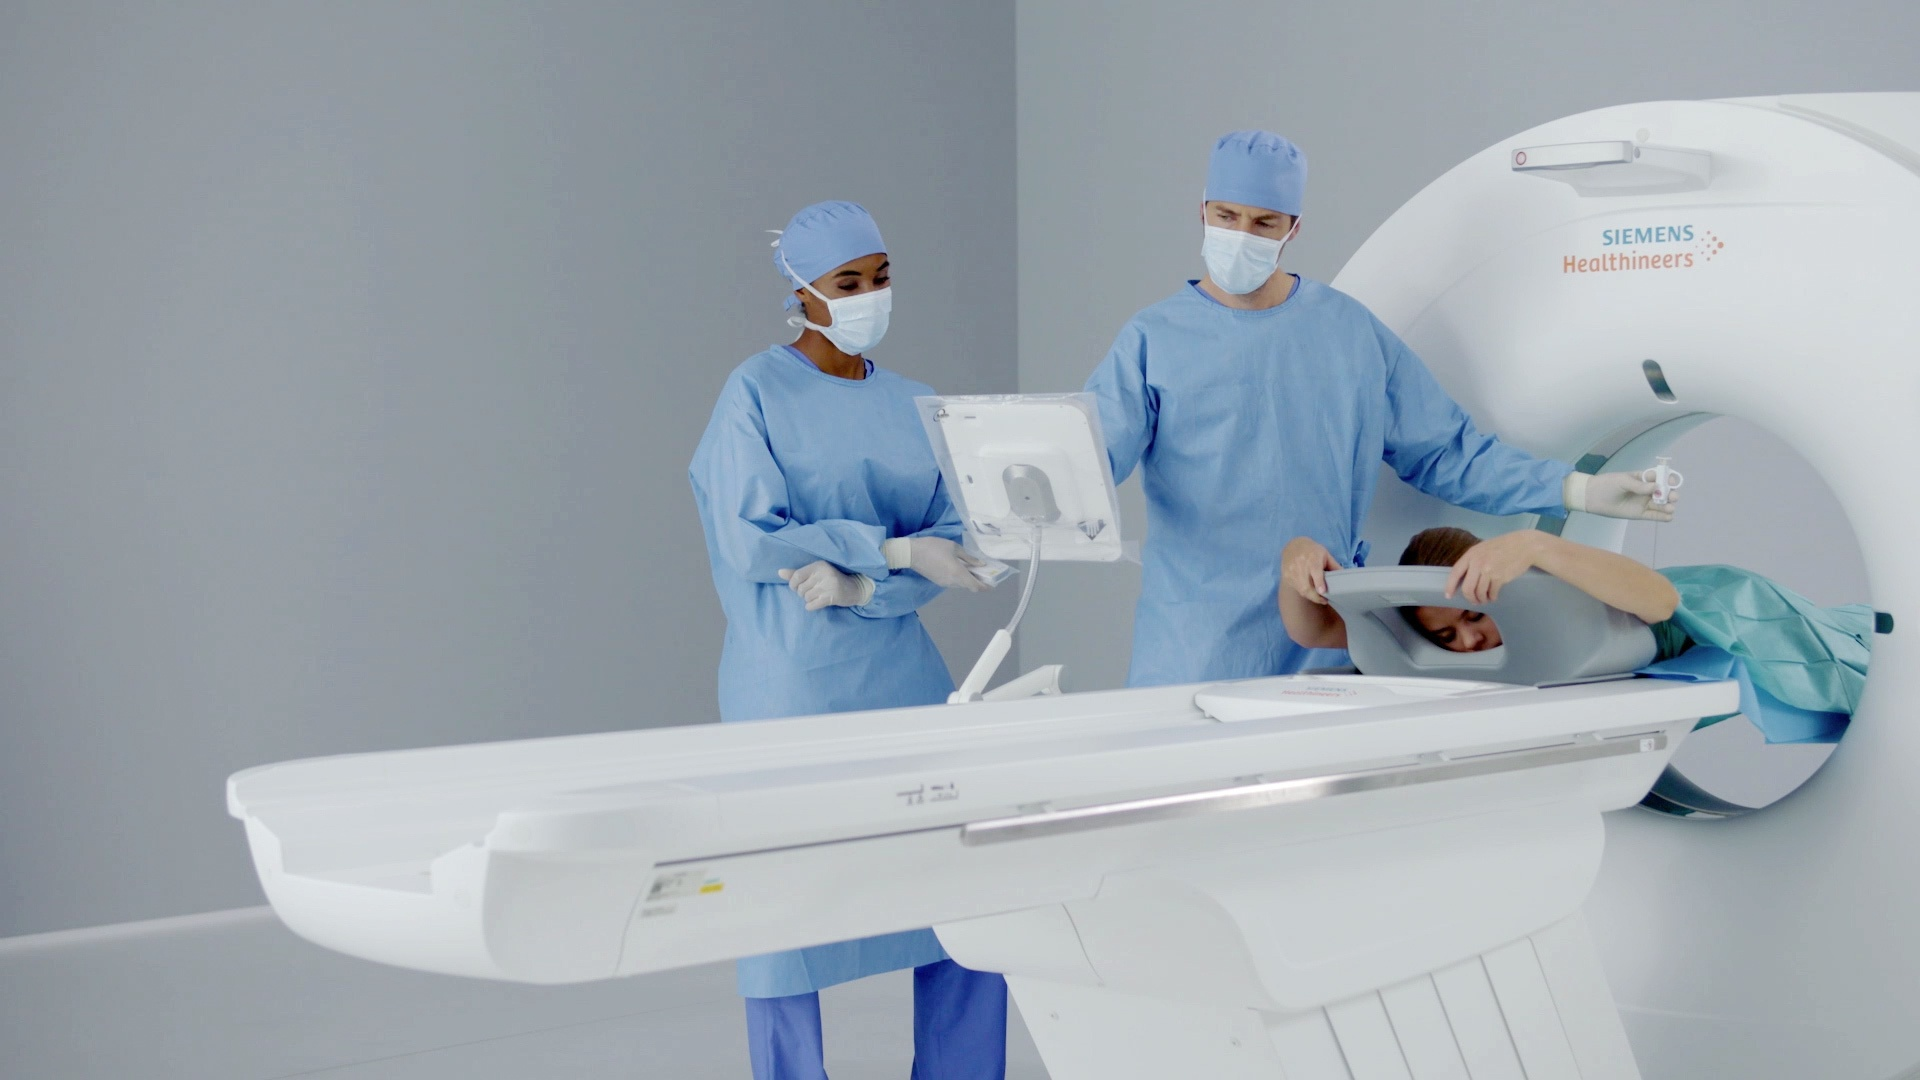 Siemens Healthineers Strengthens CT Portfolio with Four New